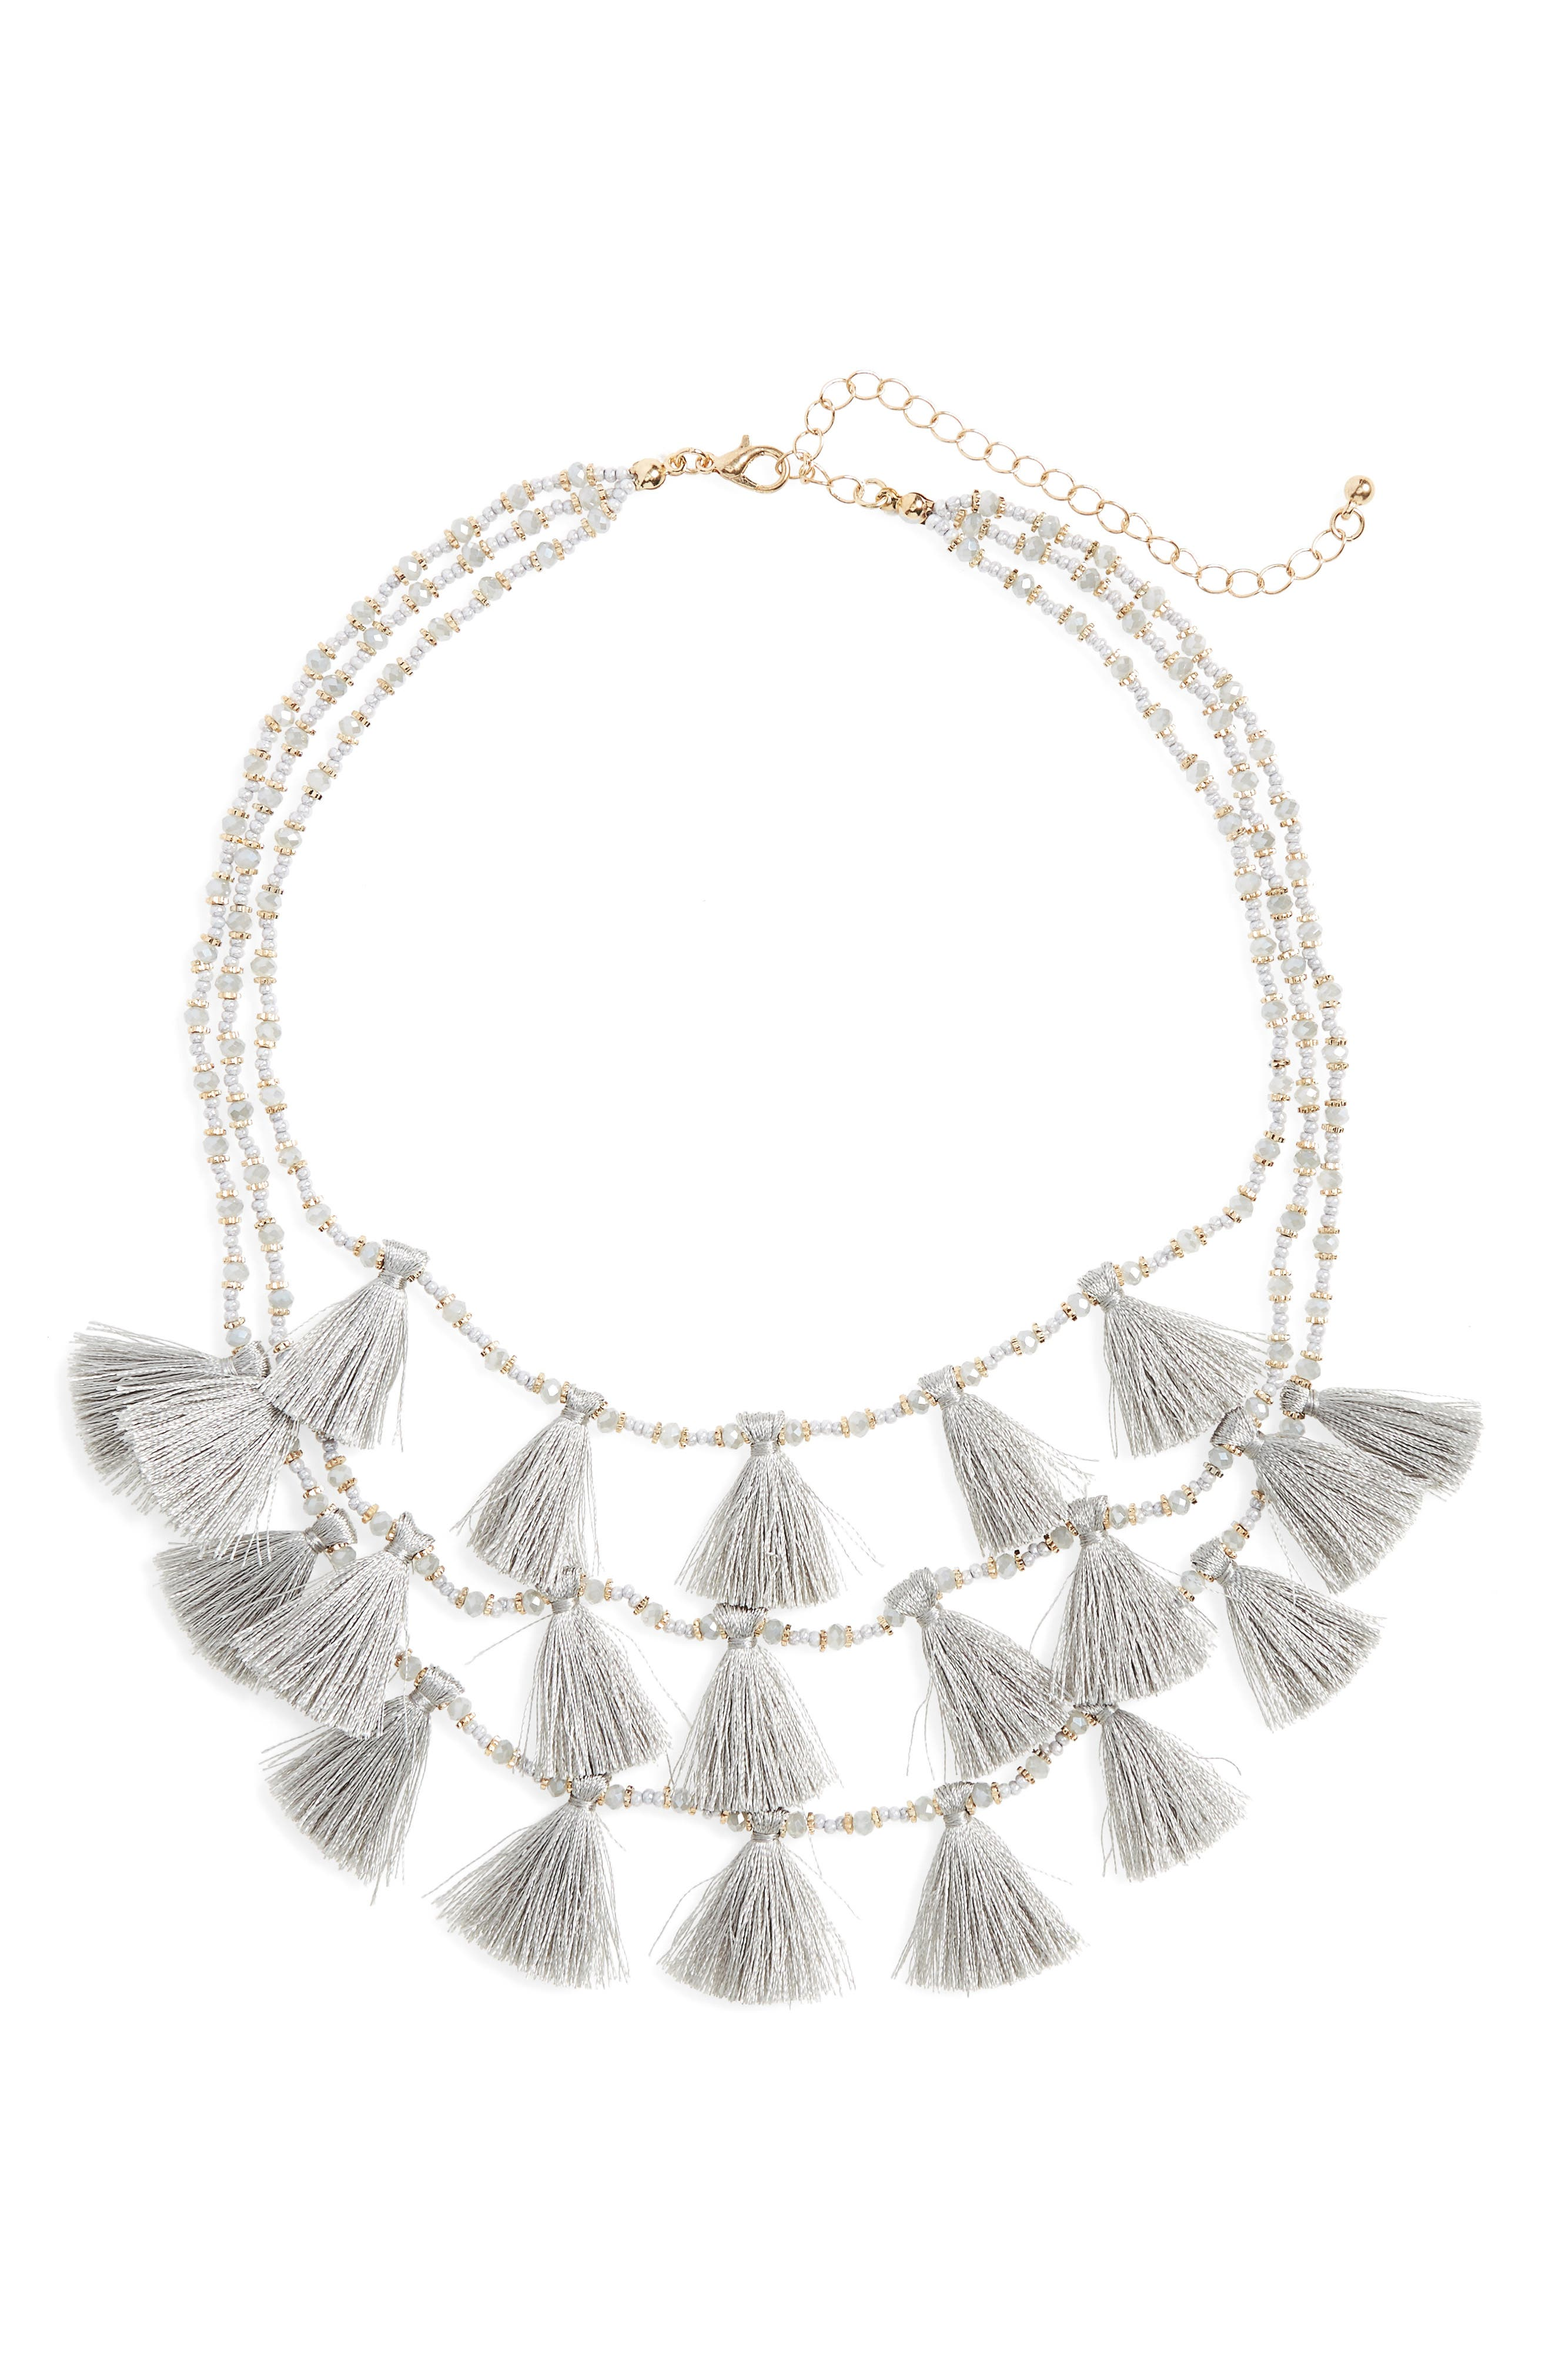 Tassel Statement Necklace,                         Main,                         color, 020